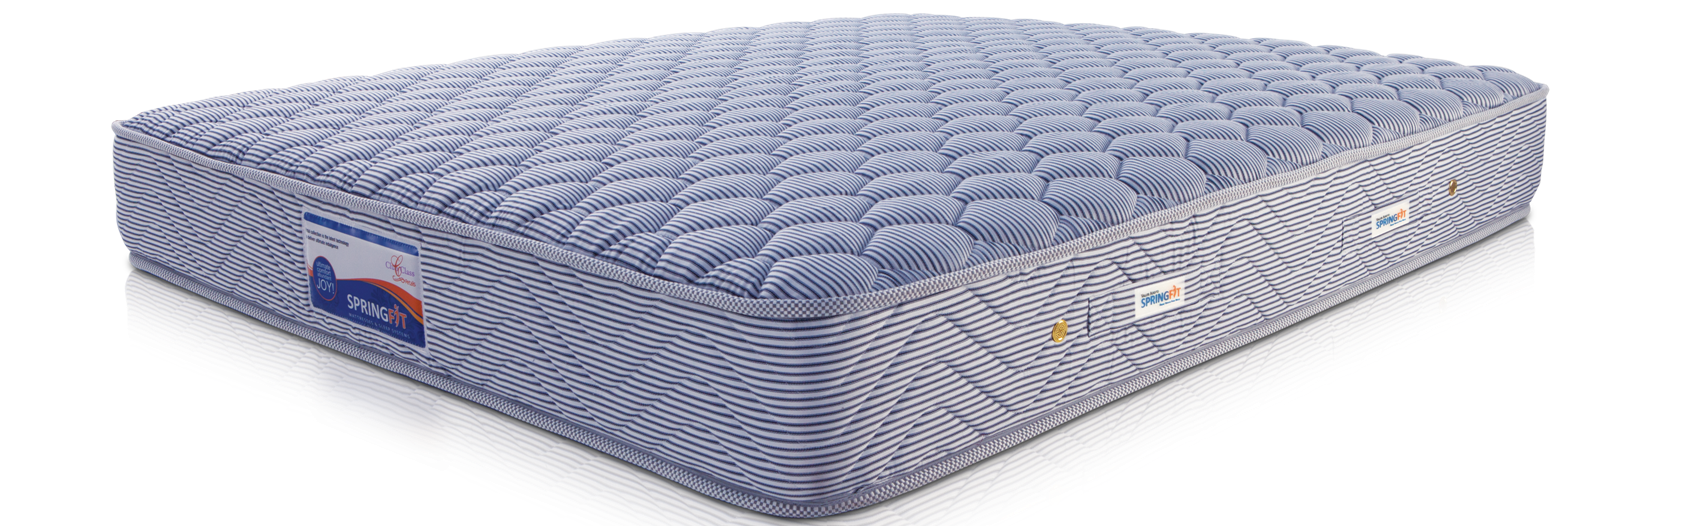 mattress png. The Hotel Standard Mattress From Springfitis A Culmination Of Best Quality Material, Superior Craftsmanship And Latest Technology To Deliver Png